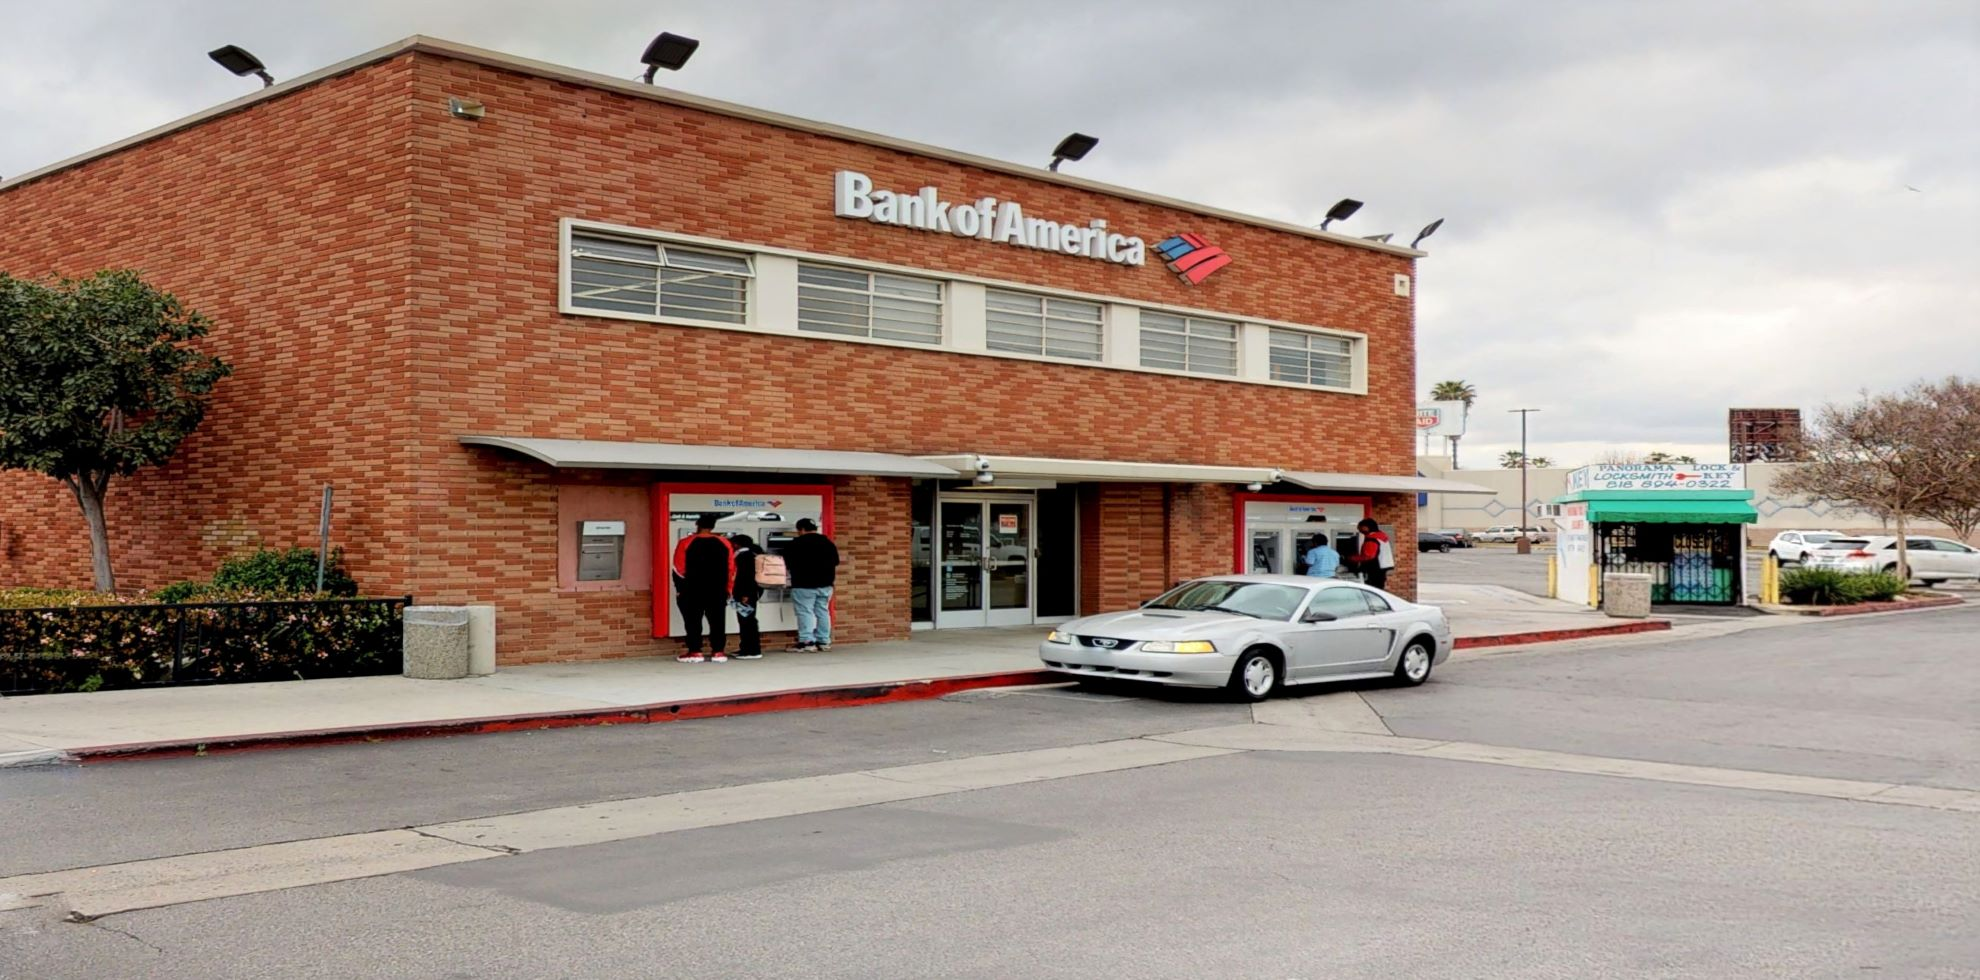 Bank of America financial center with walk-up ATM | 8324 Van Nuys Blvd, Panorama City, CA 91402